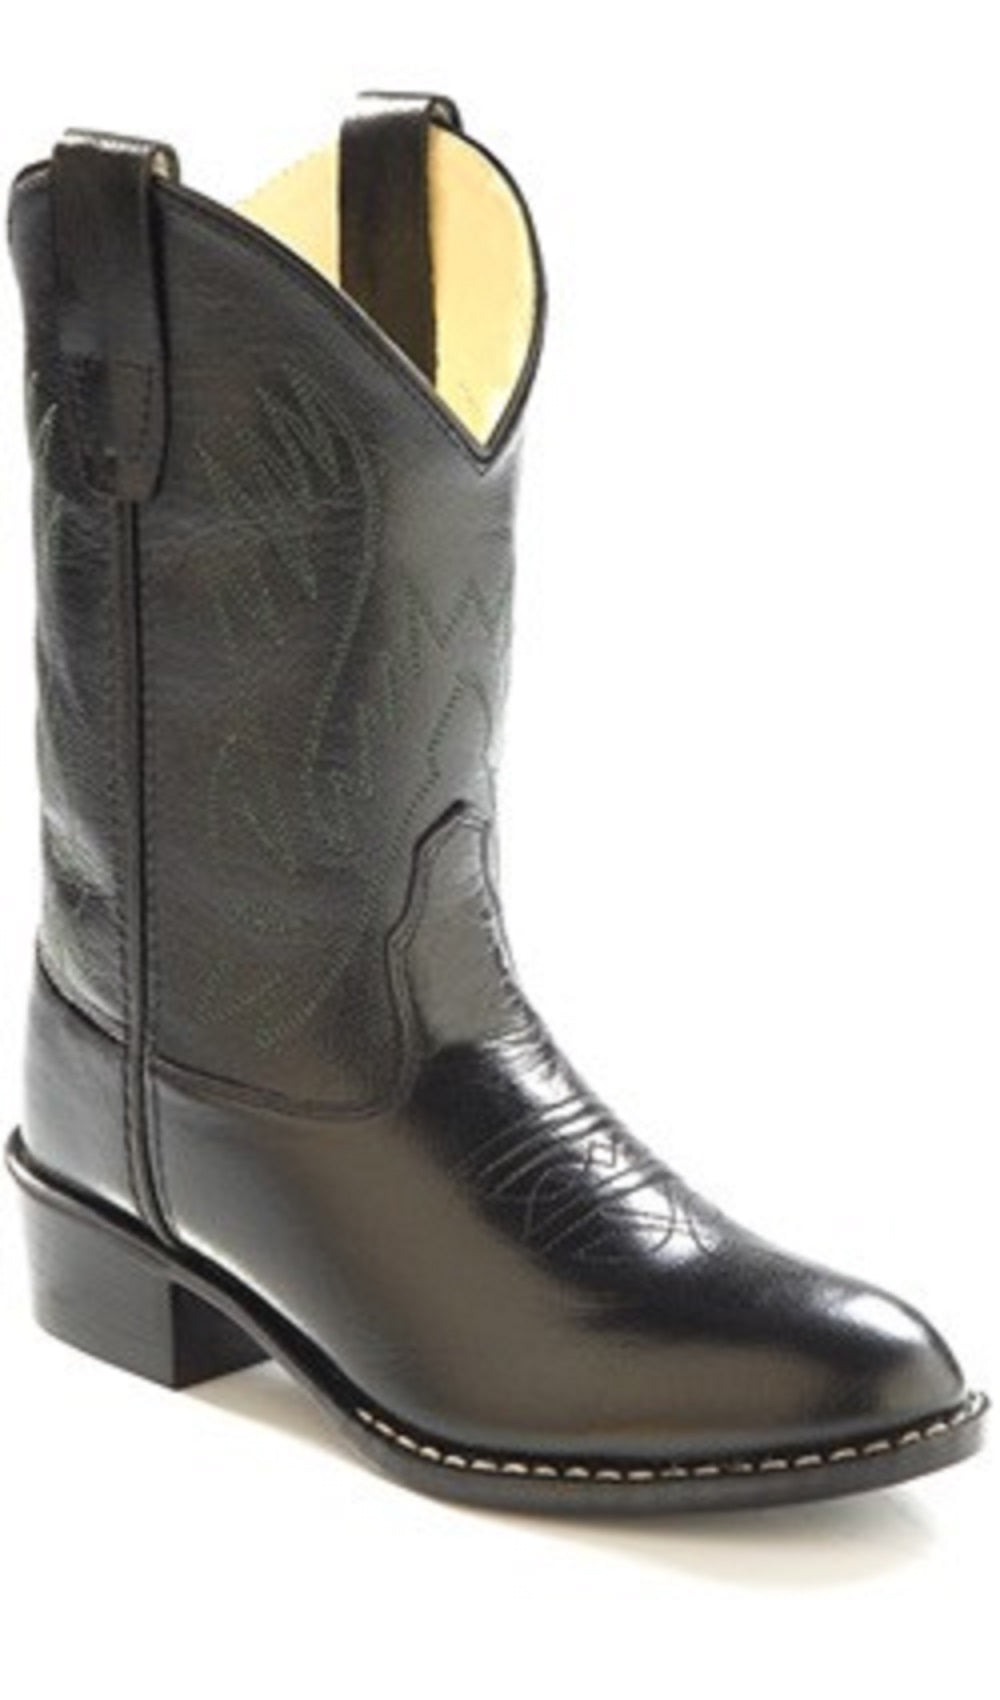 412b7c046cc Old West Kids Western Boots Black Corona Calf Leather Item OW-1110